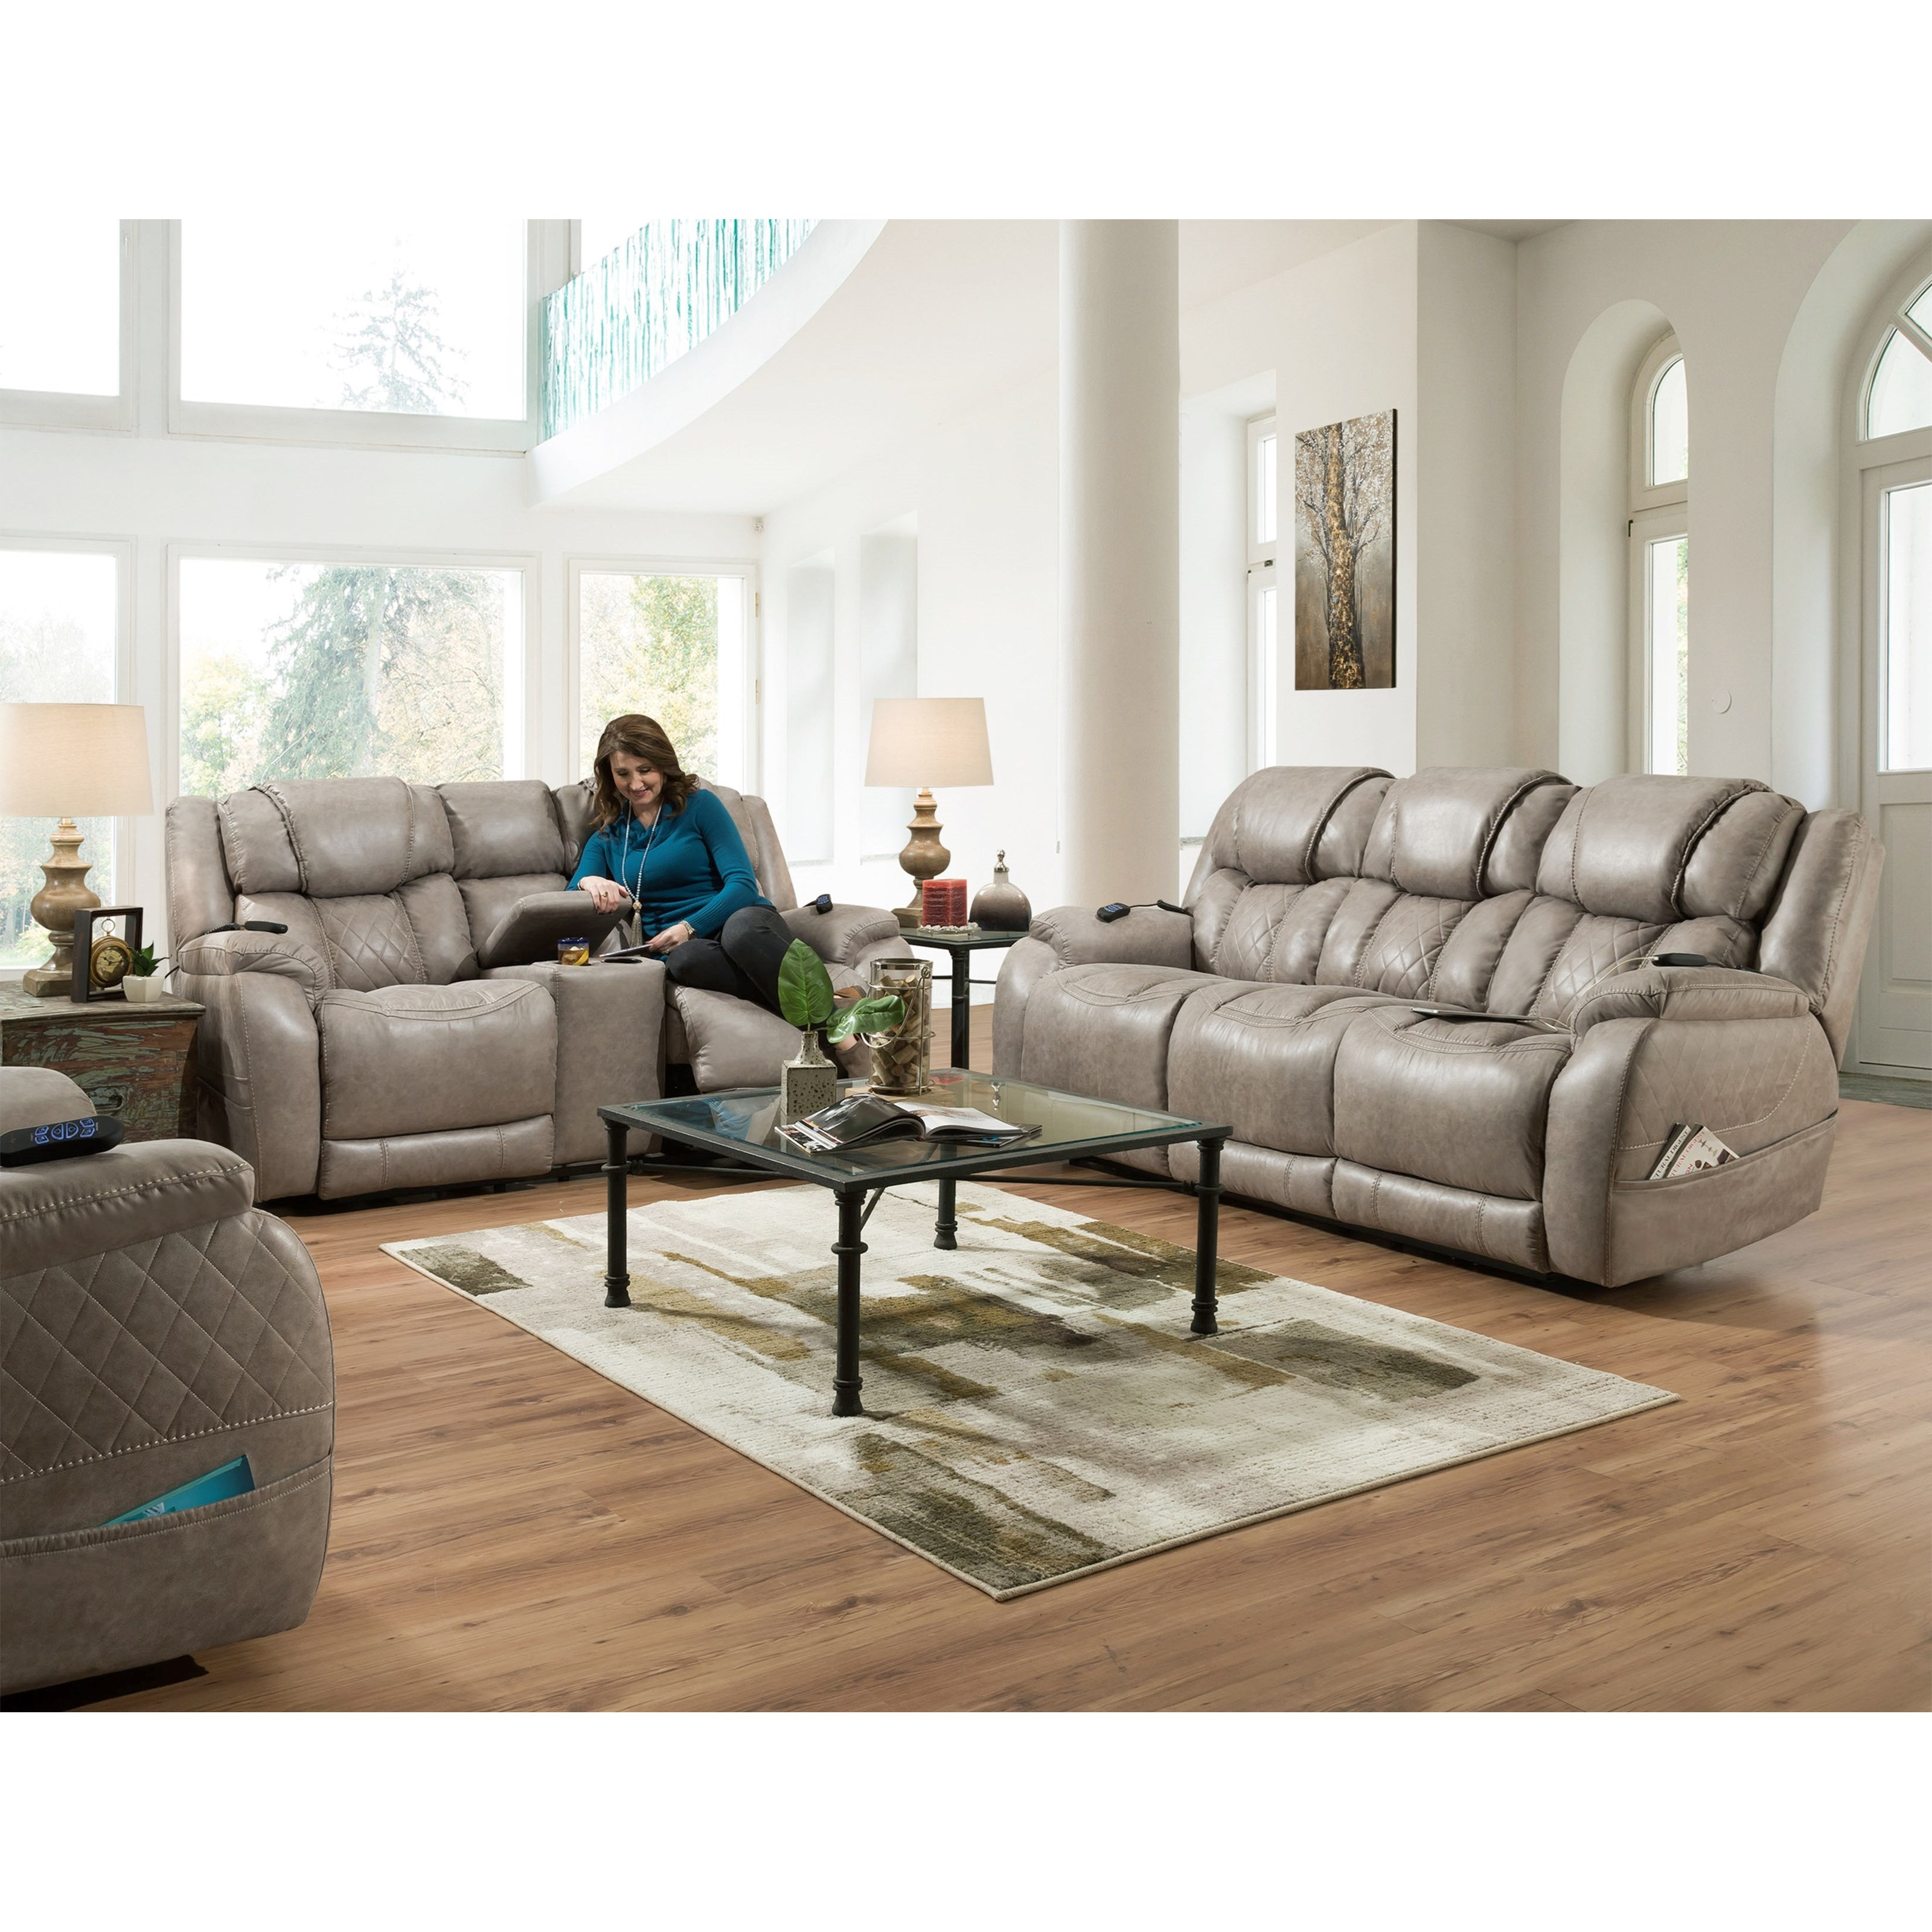 174 Reclining Living Room Group by HomeStretch at Westrich Furniture & Appliances